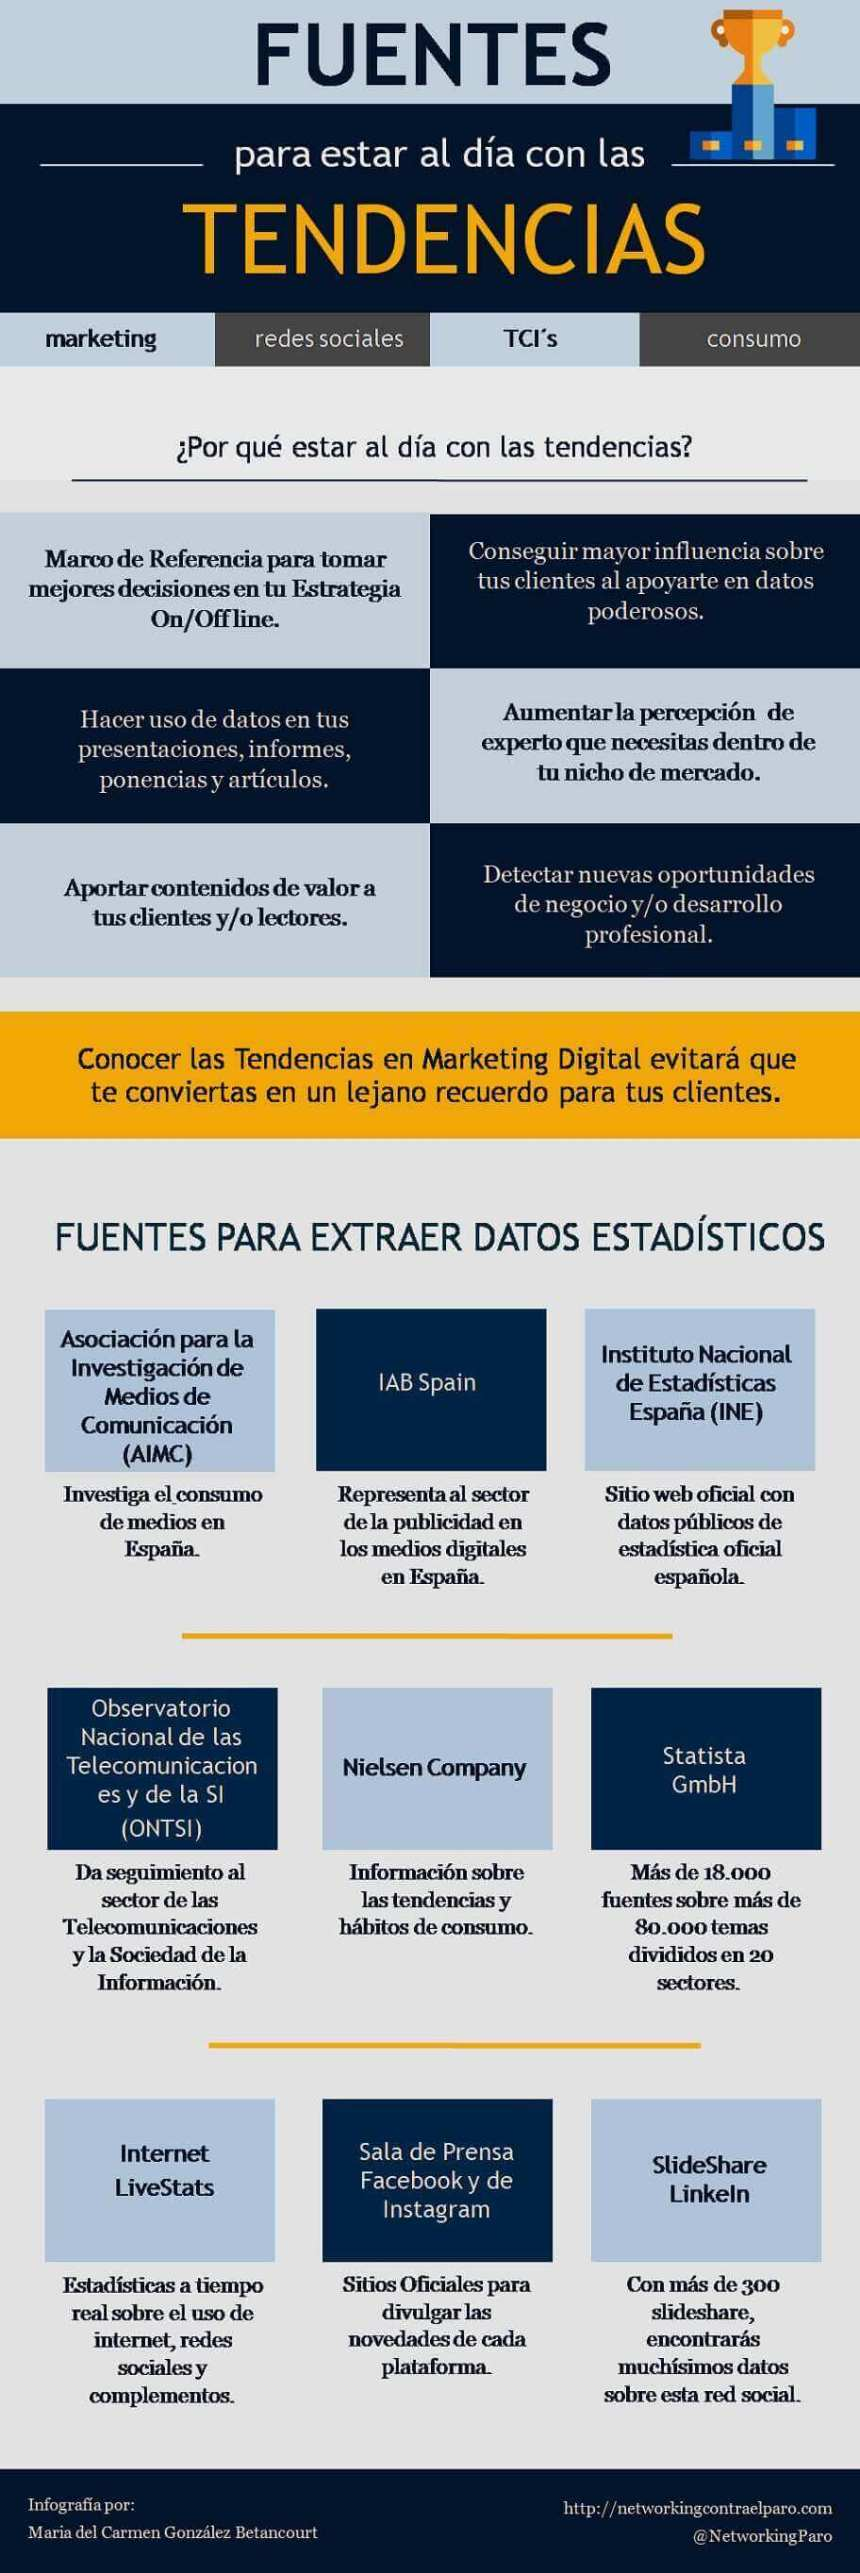 Fuentes de tendencias sobre Marketing Digital